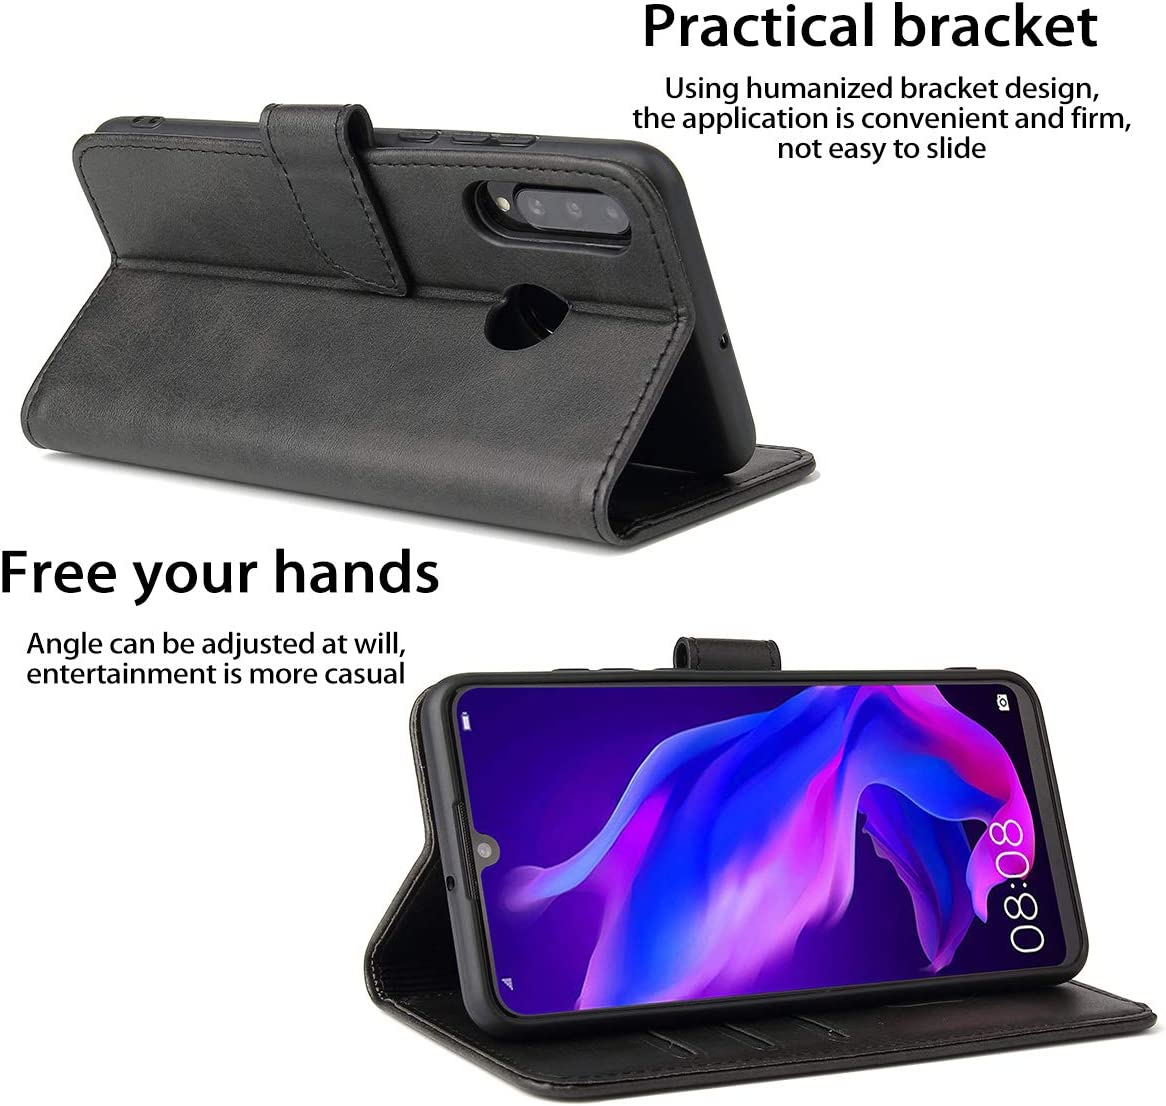 Shockproof Protective Flip Case for Huawei P30 Lite Huawei P30 Lite Wallet Case with Card Holder//Slot for Scalette Leather Wallet Case Cover Blue Huawei P30 Lite Case Built-in Magnet Card Slot